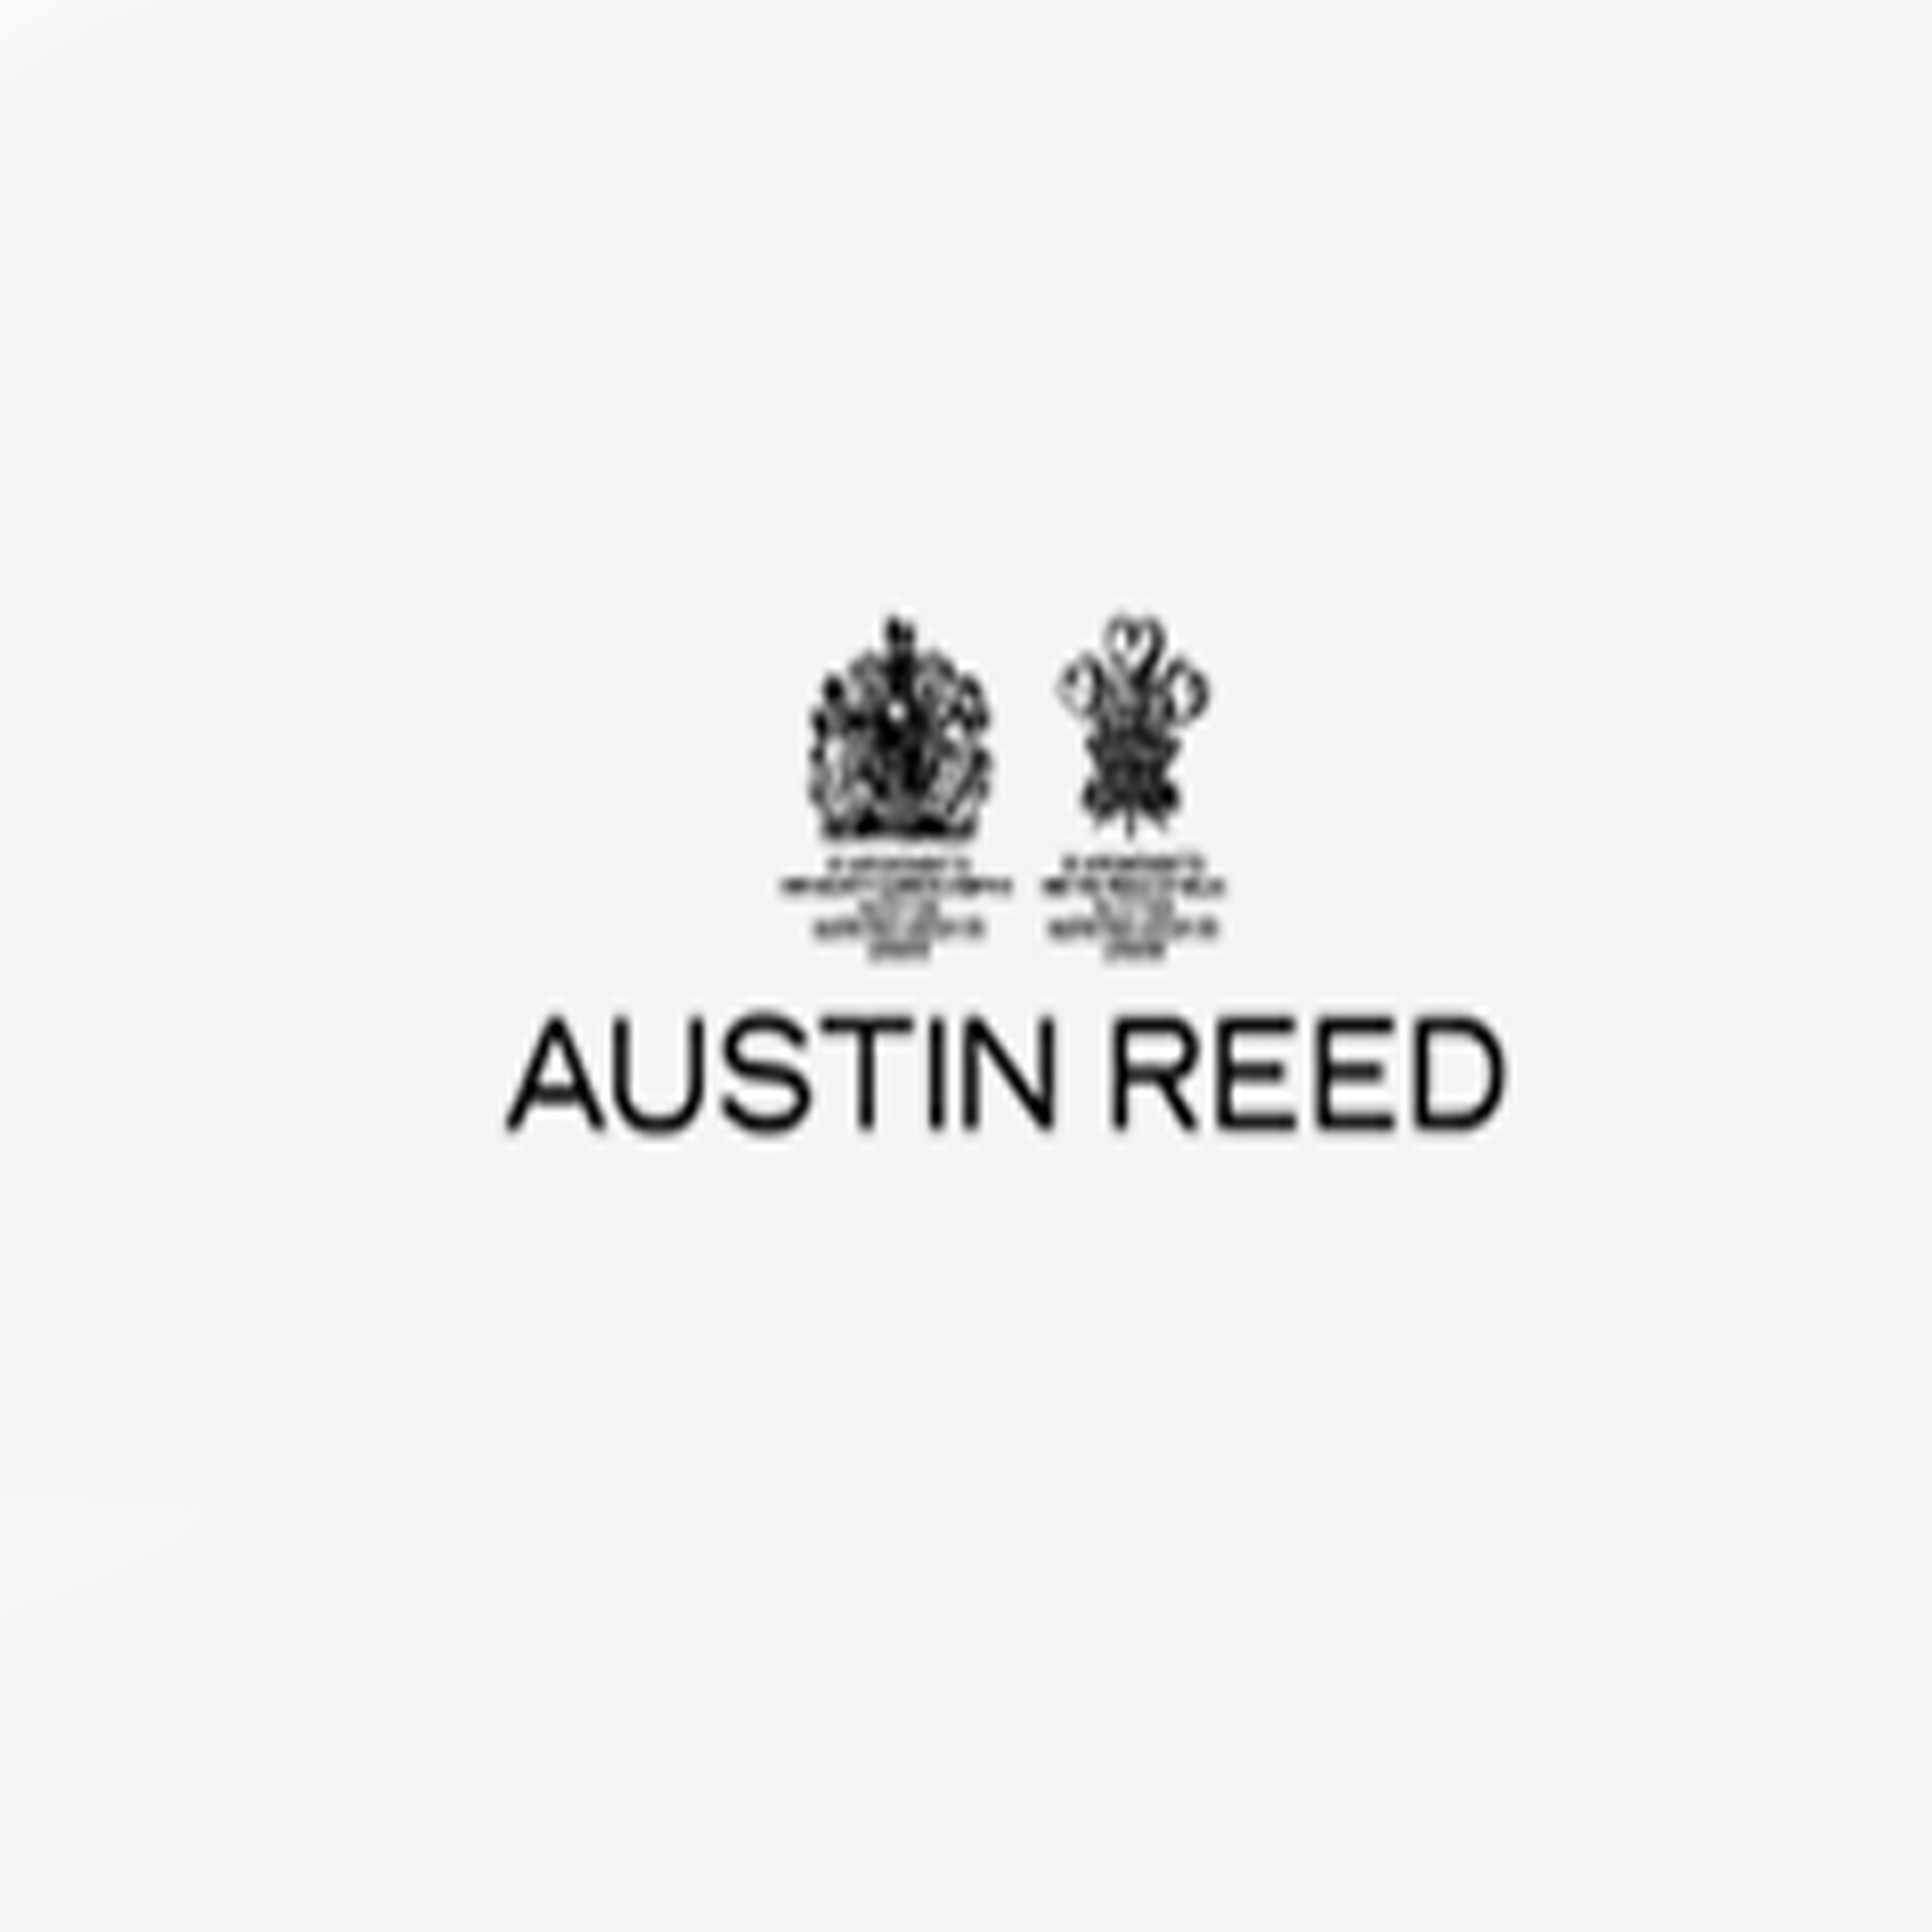 Austin Reed Aureole Inspecs